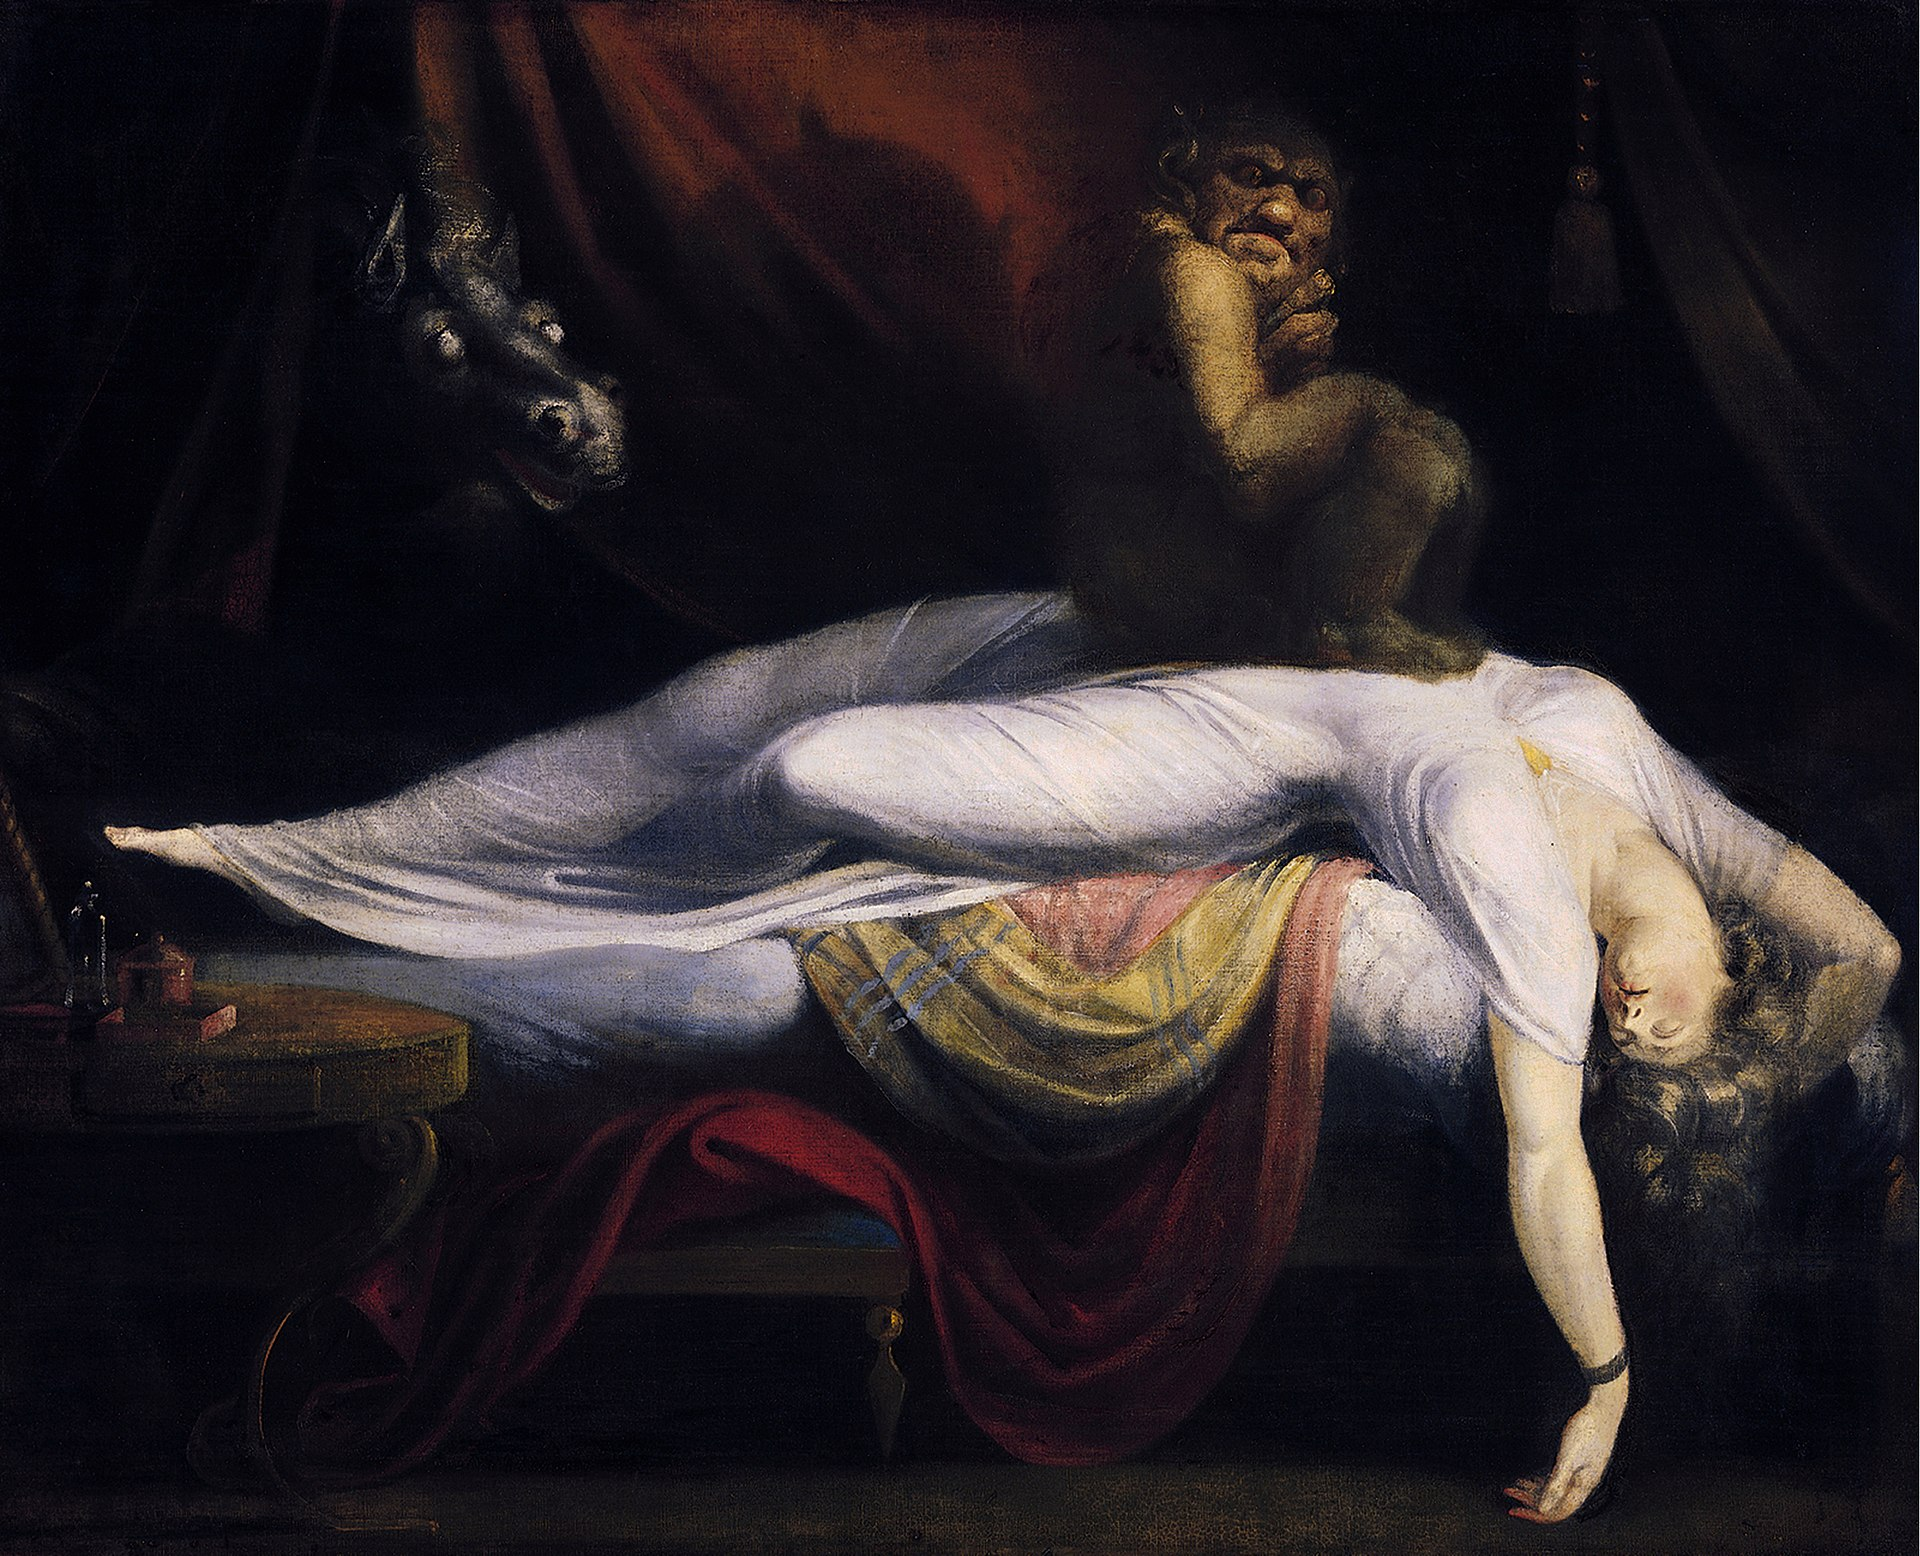 """This painting by John Henry Fuseli, titled """"The Nightmare"""", purportedly depicts sleep paralysis, here shown by a demon visiting and sitting on the chest of a sleeping person."""